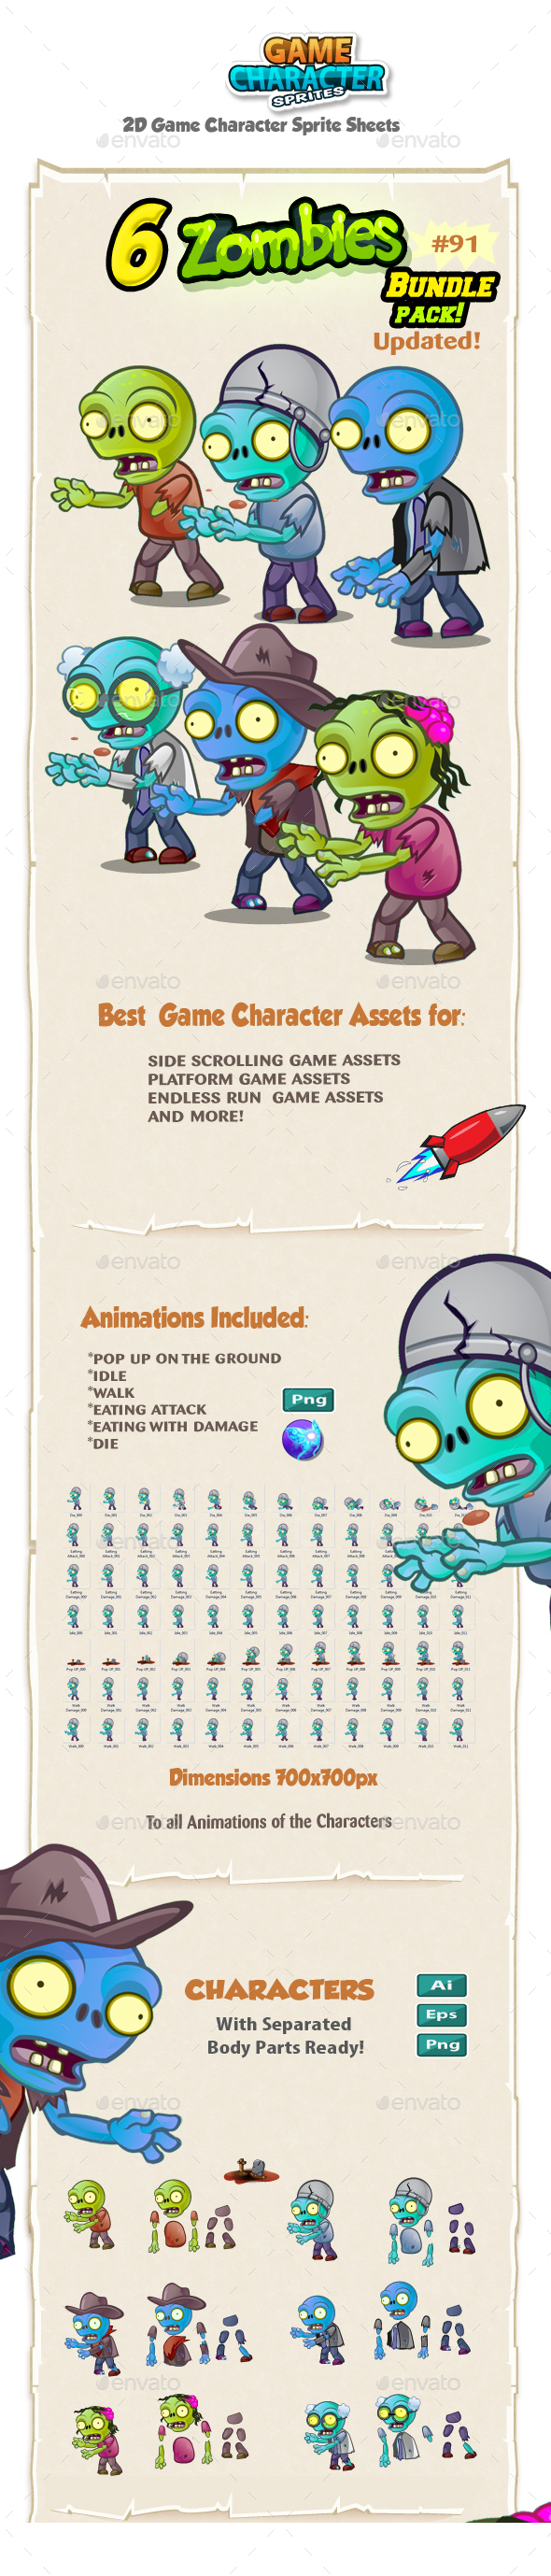 6 Zombie Characters Sprites Bundle Pack 91 - Sprites Game Assets